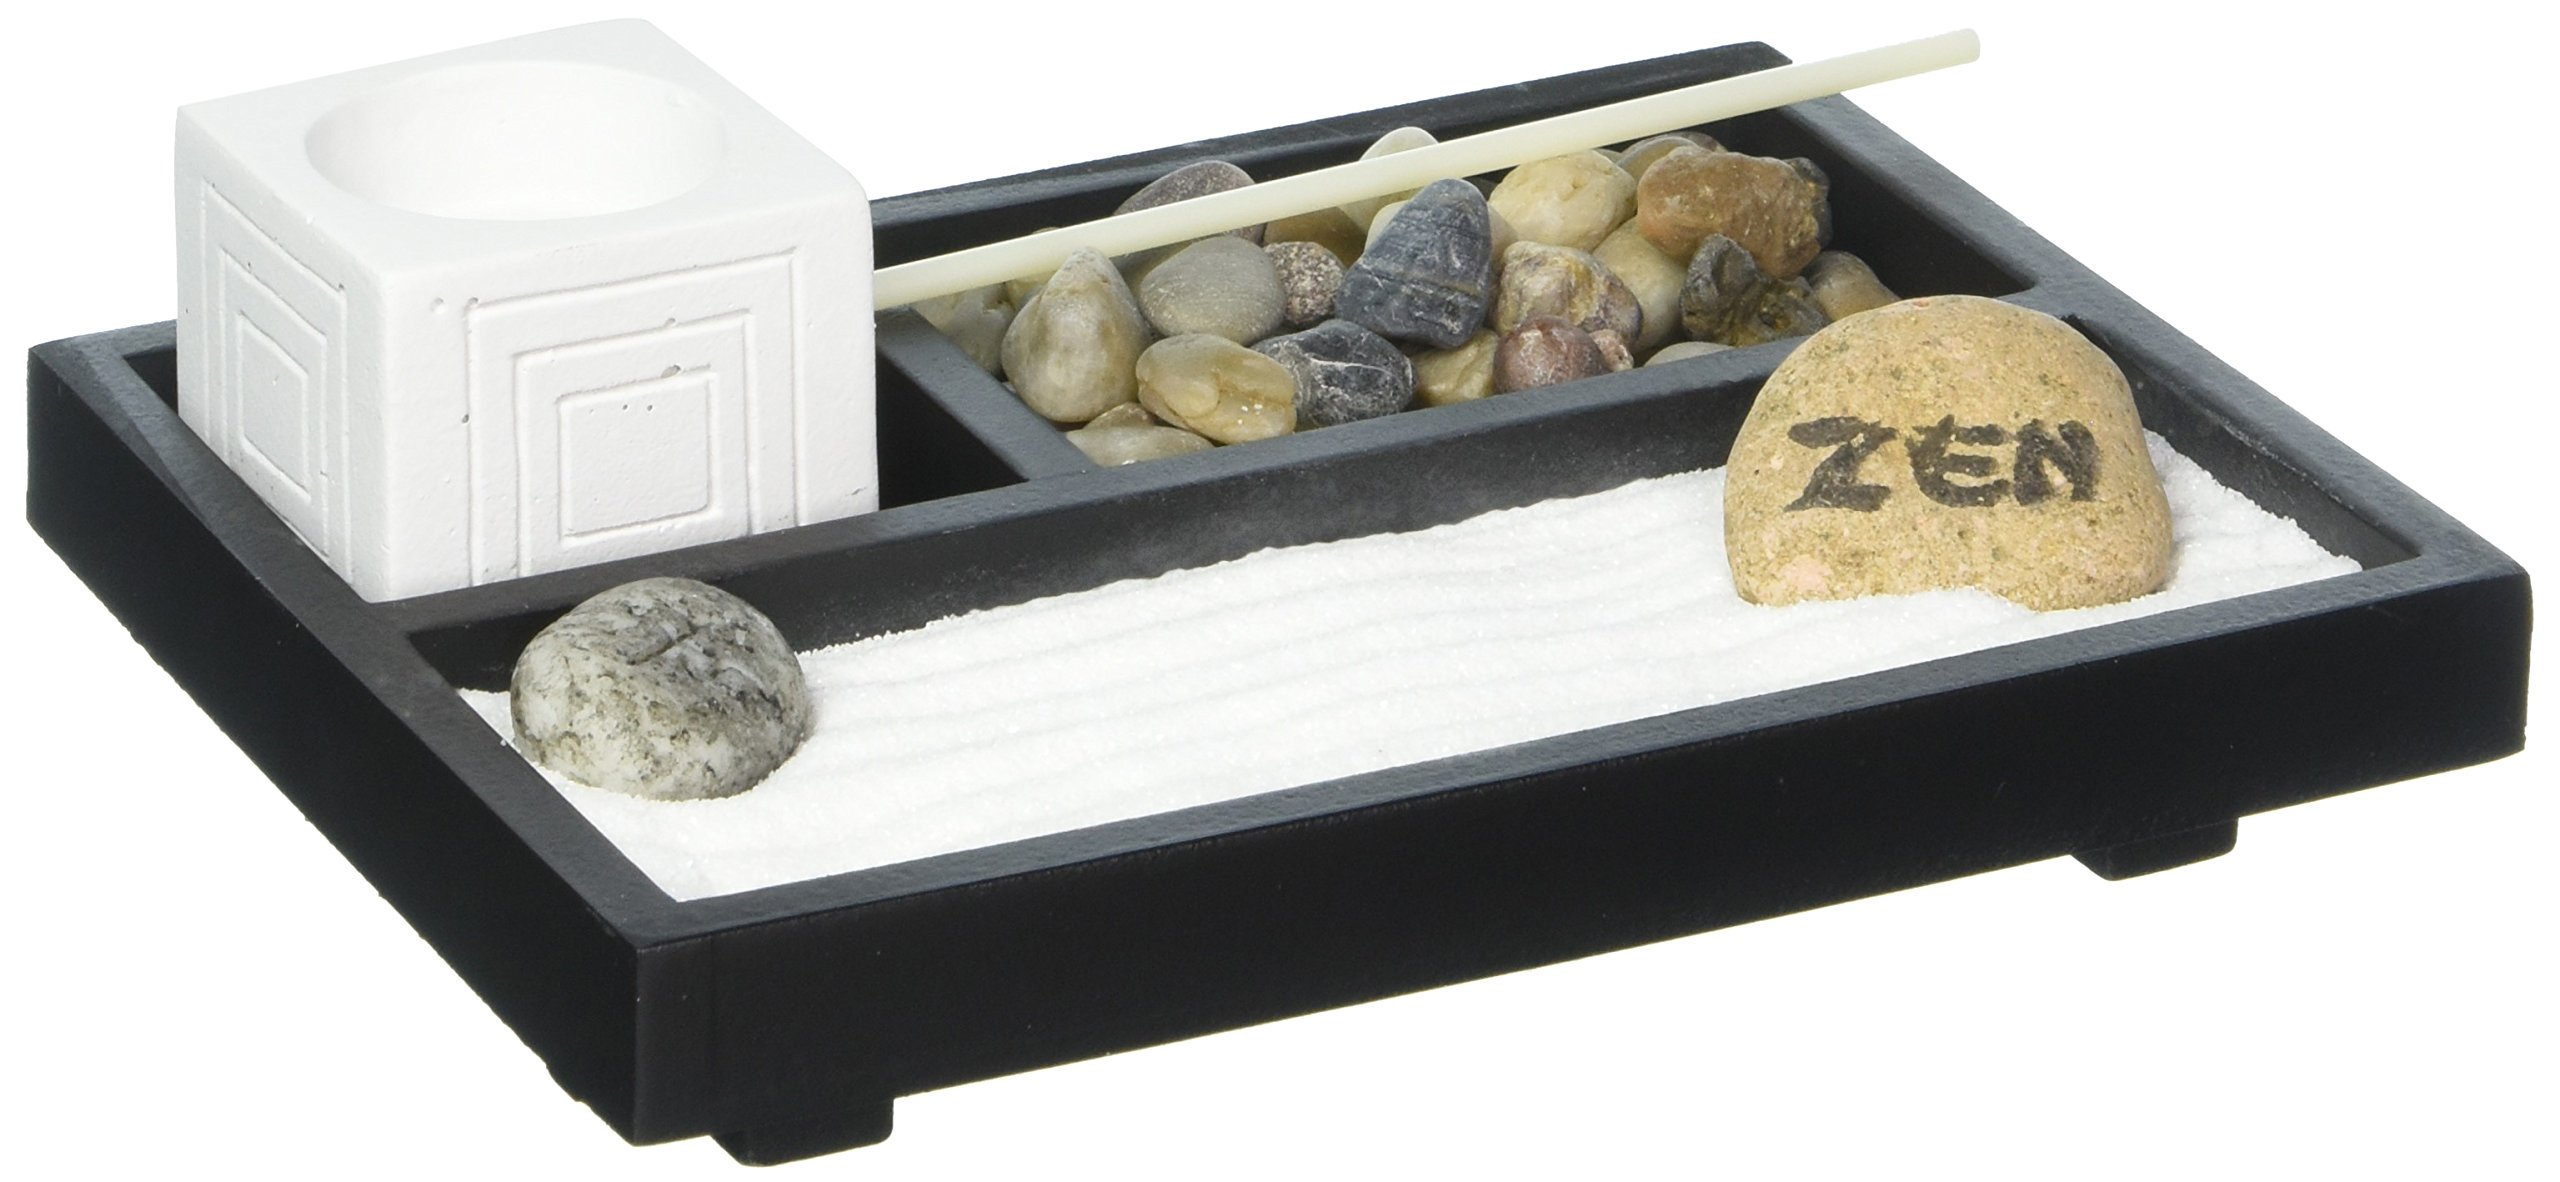 Koehler 13053 7 Inch Tabletop Zen Decorative Garden Kit